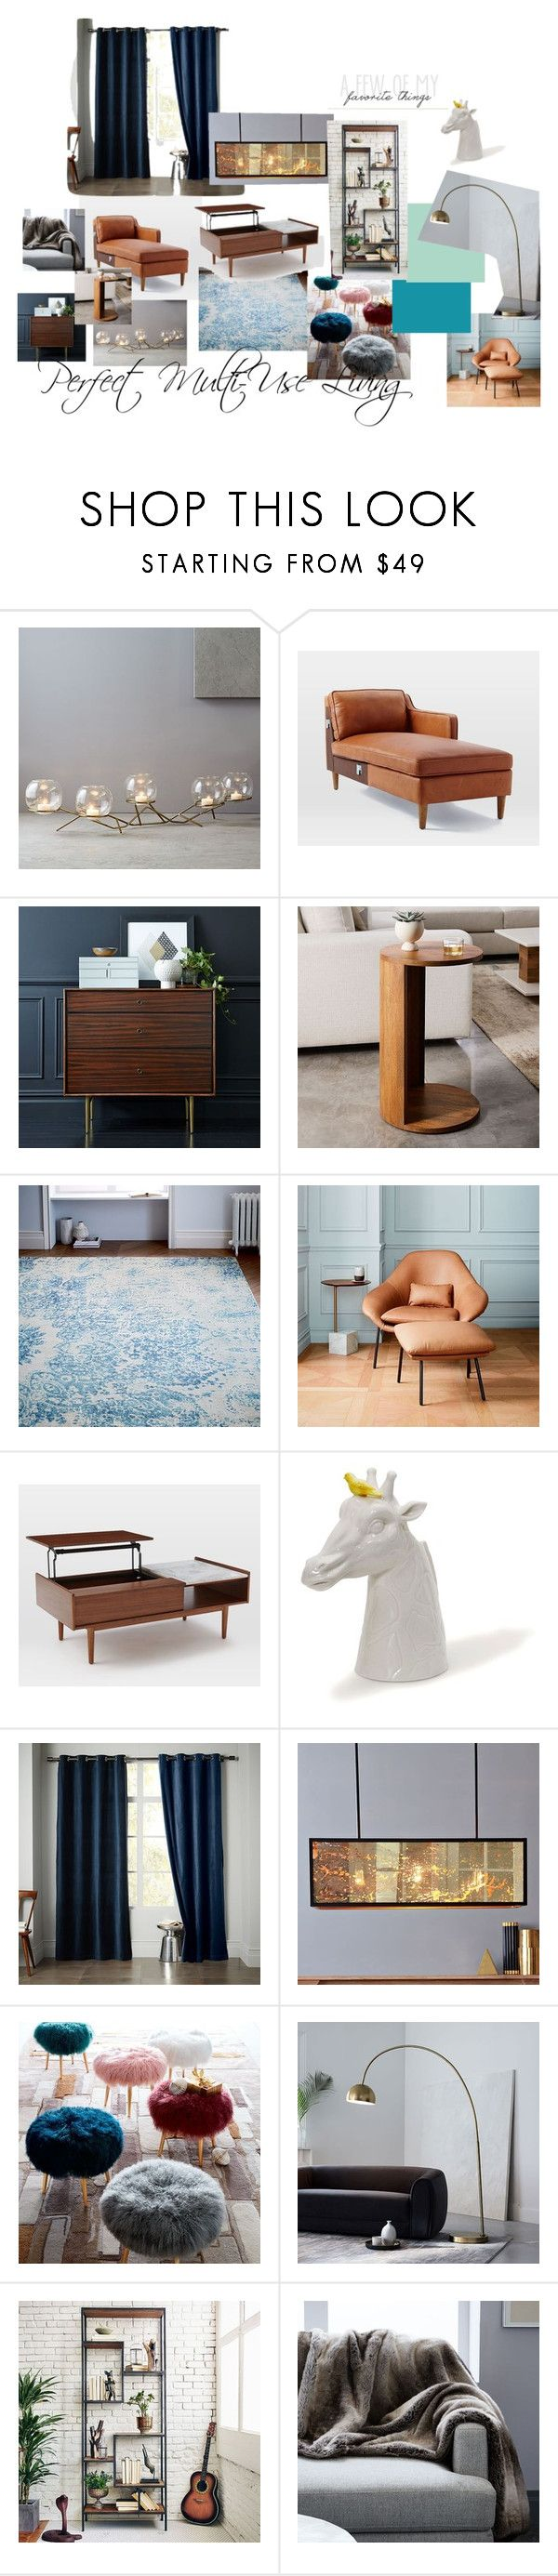 """Dream Living Area with West Elm"" by anyamarco on Polyvore featuring interior, interiors, interior design, home, home decor, interior decorating, West Elm, living room and dreamwestelm"